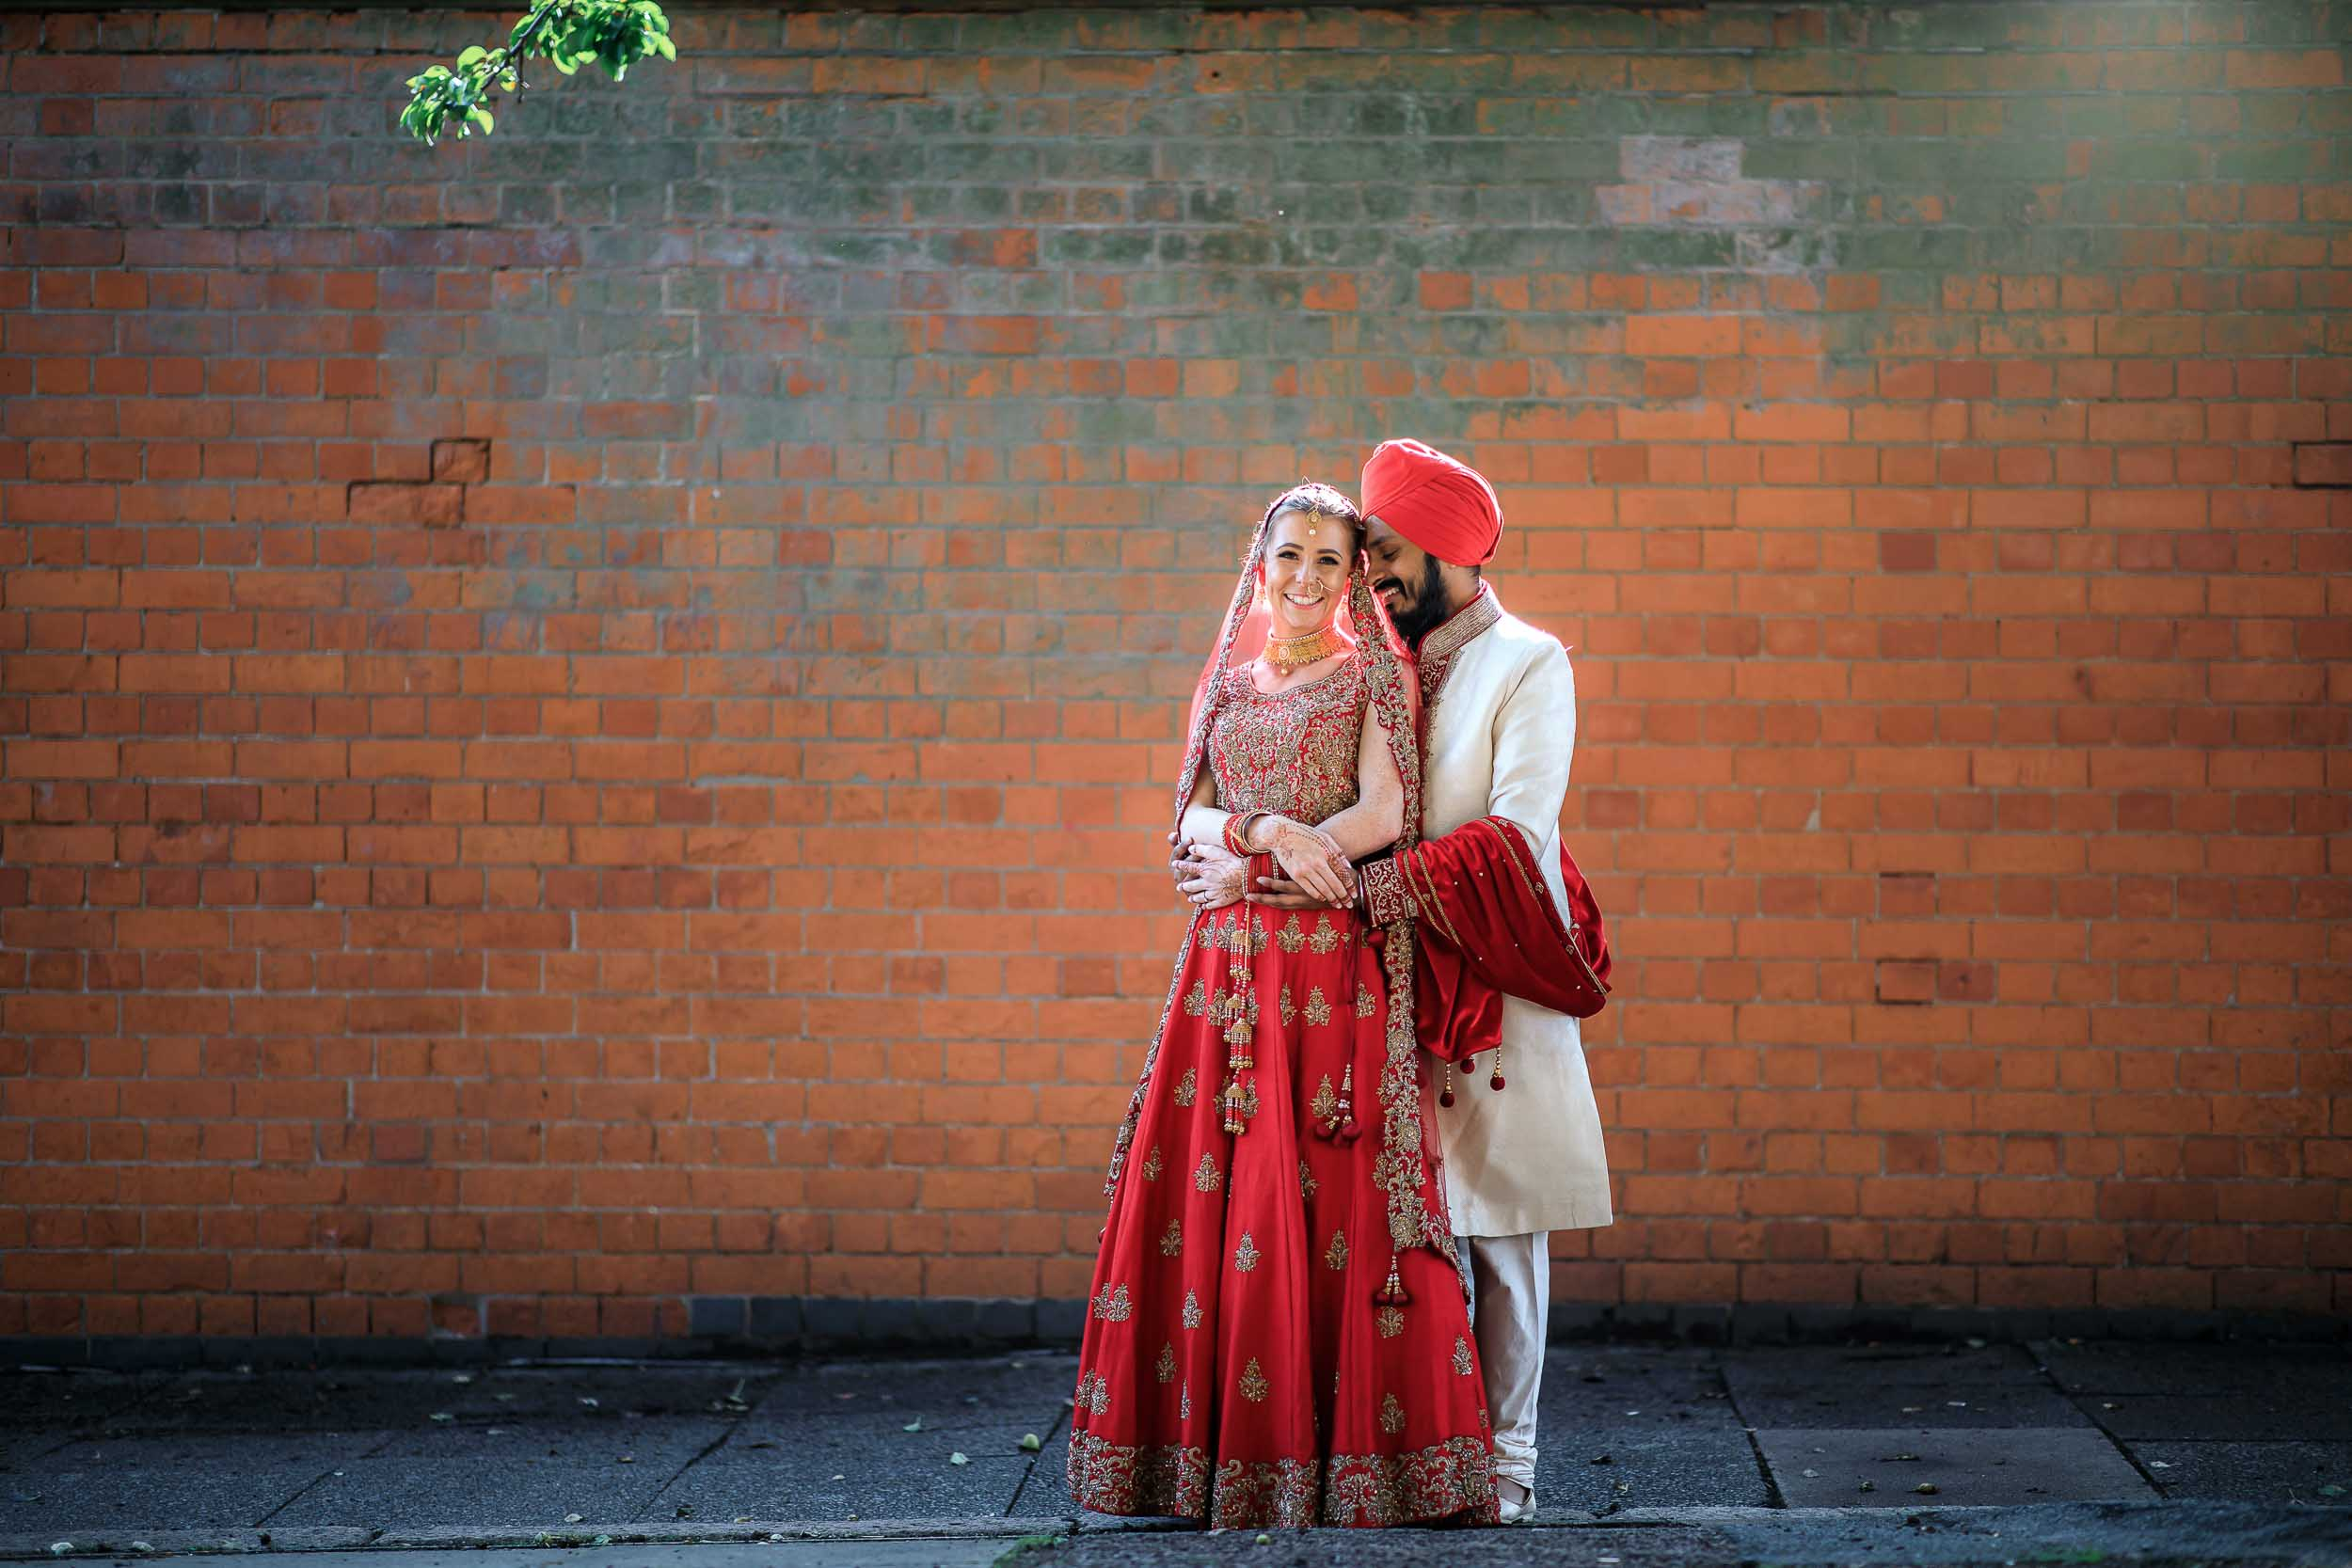 West-midlands wedding photographer, Indian wedding, Herefordshire wedding photographer, Wedding Photographers in Herefordshire.